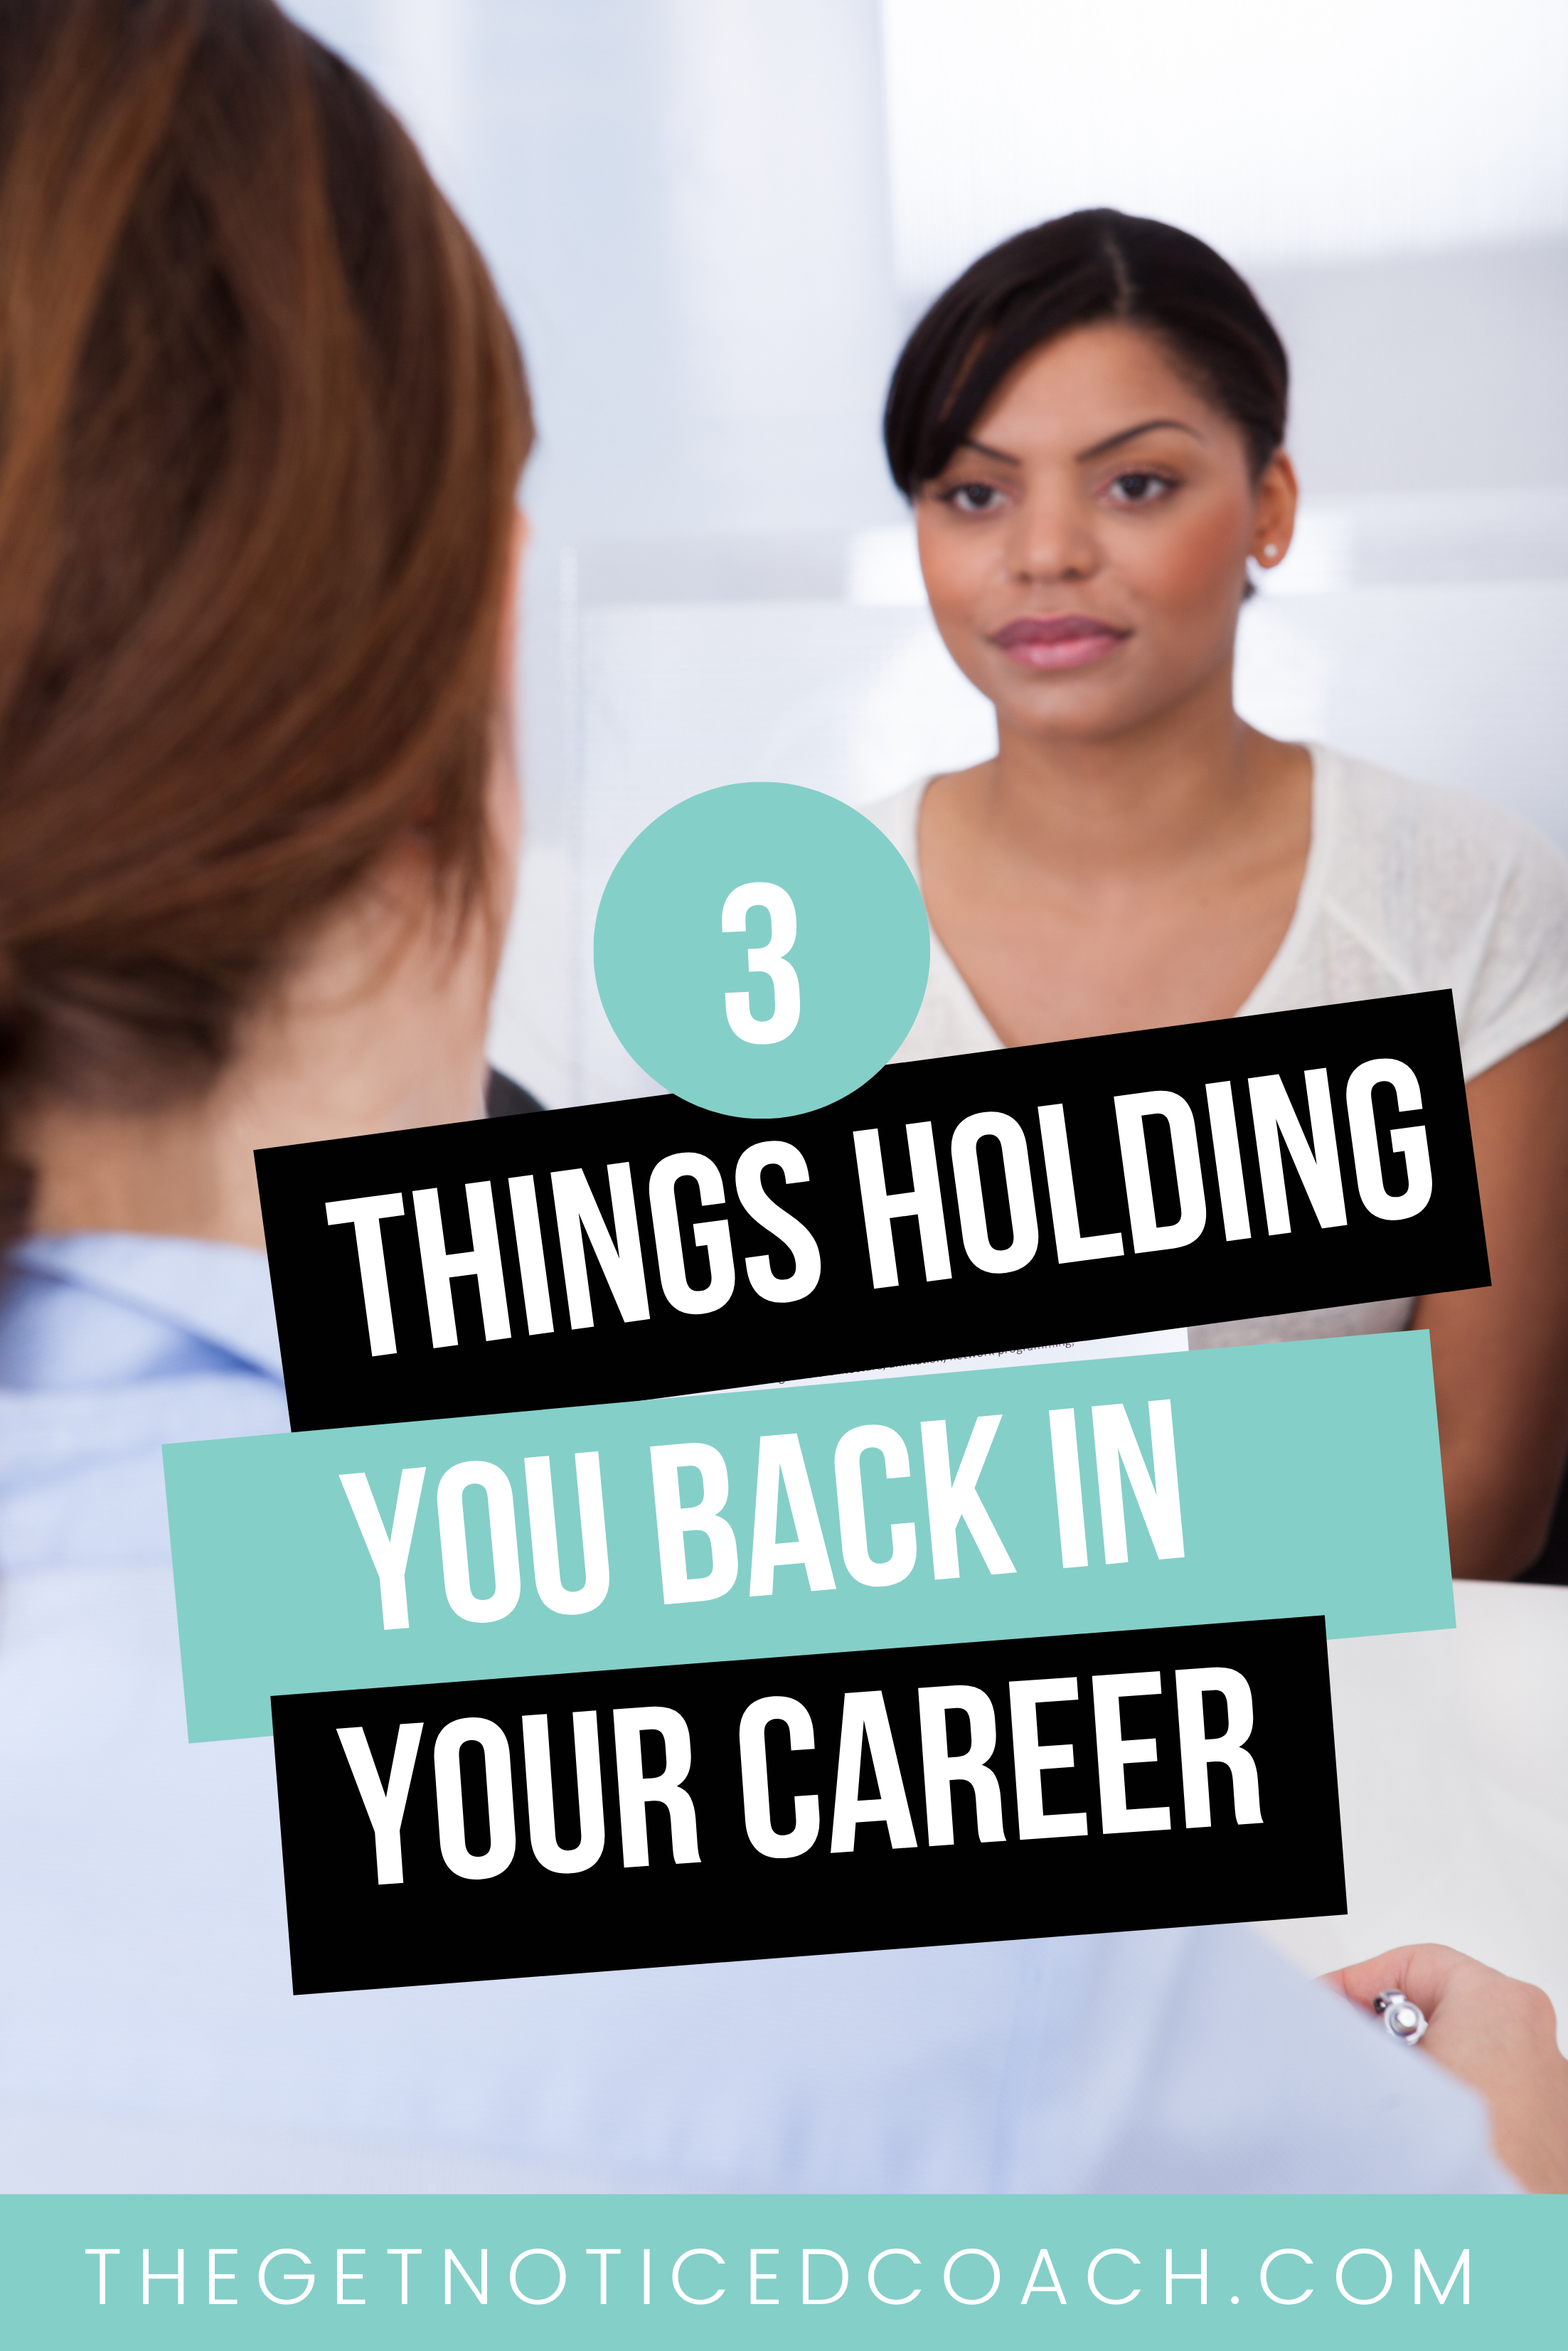 3 things holding you back in your career